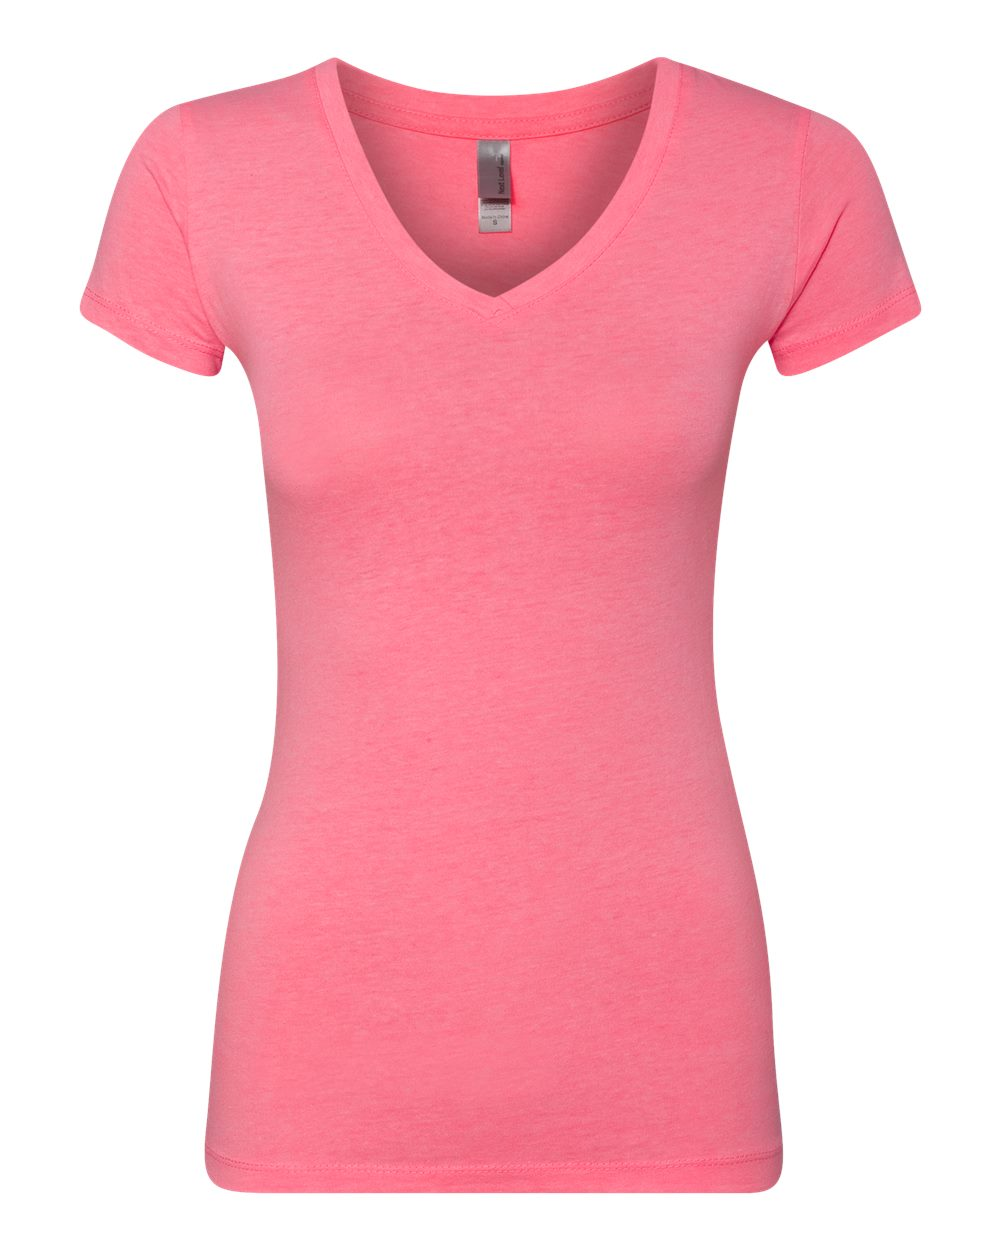 Next_Level_3400L_Neon_Heather_Pink_Front_High.jpg